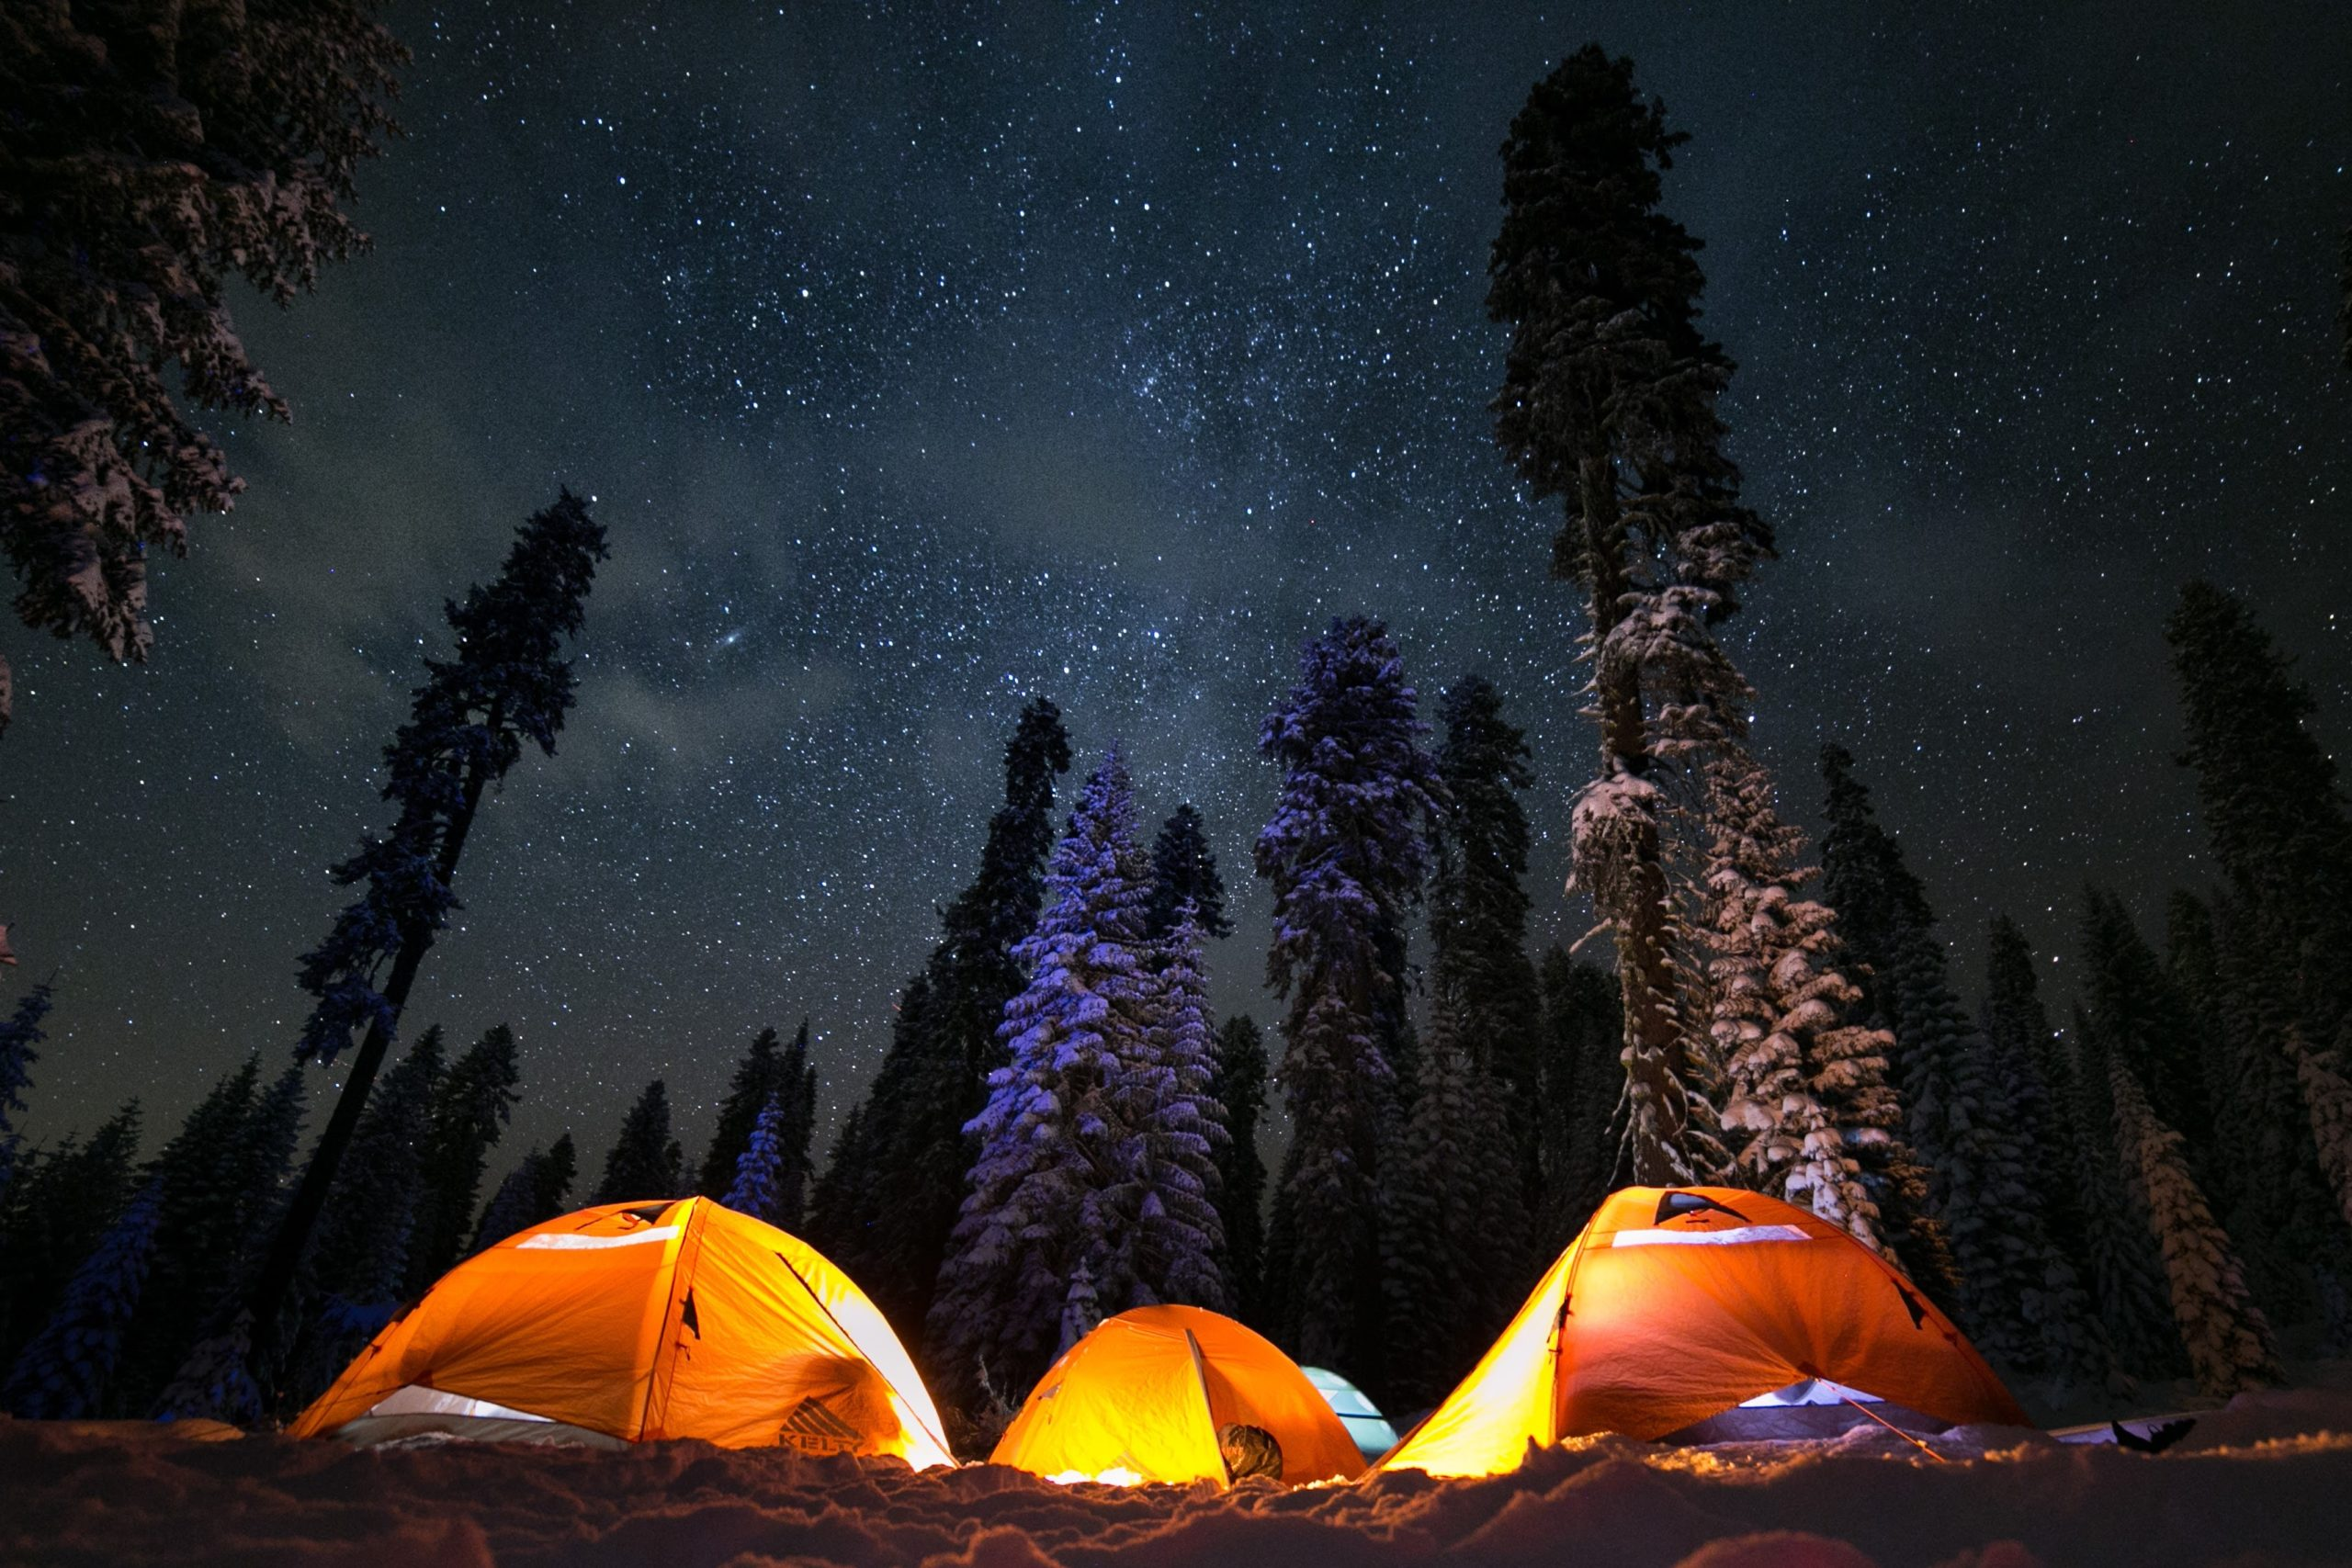 3 Best Campsites and Glampsites In The Philippines